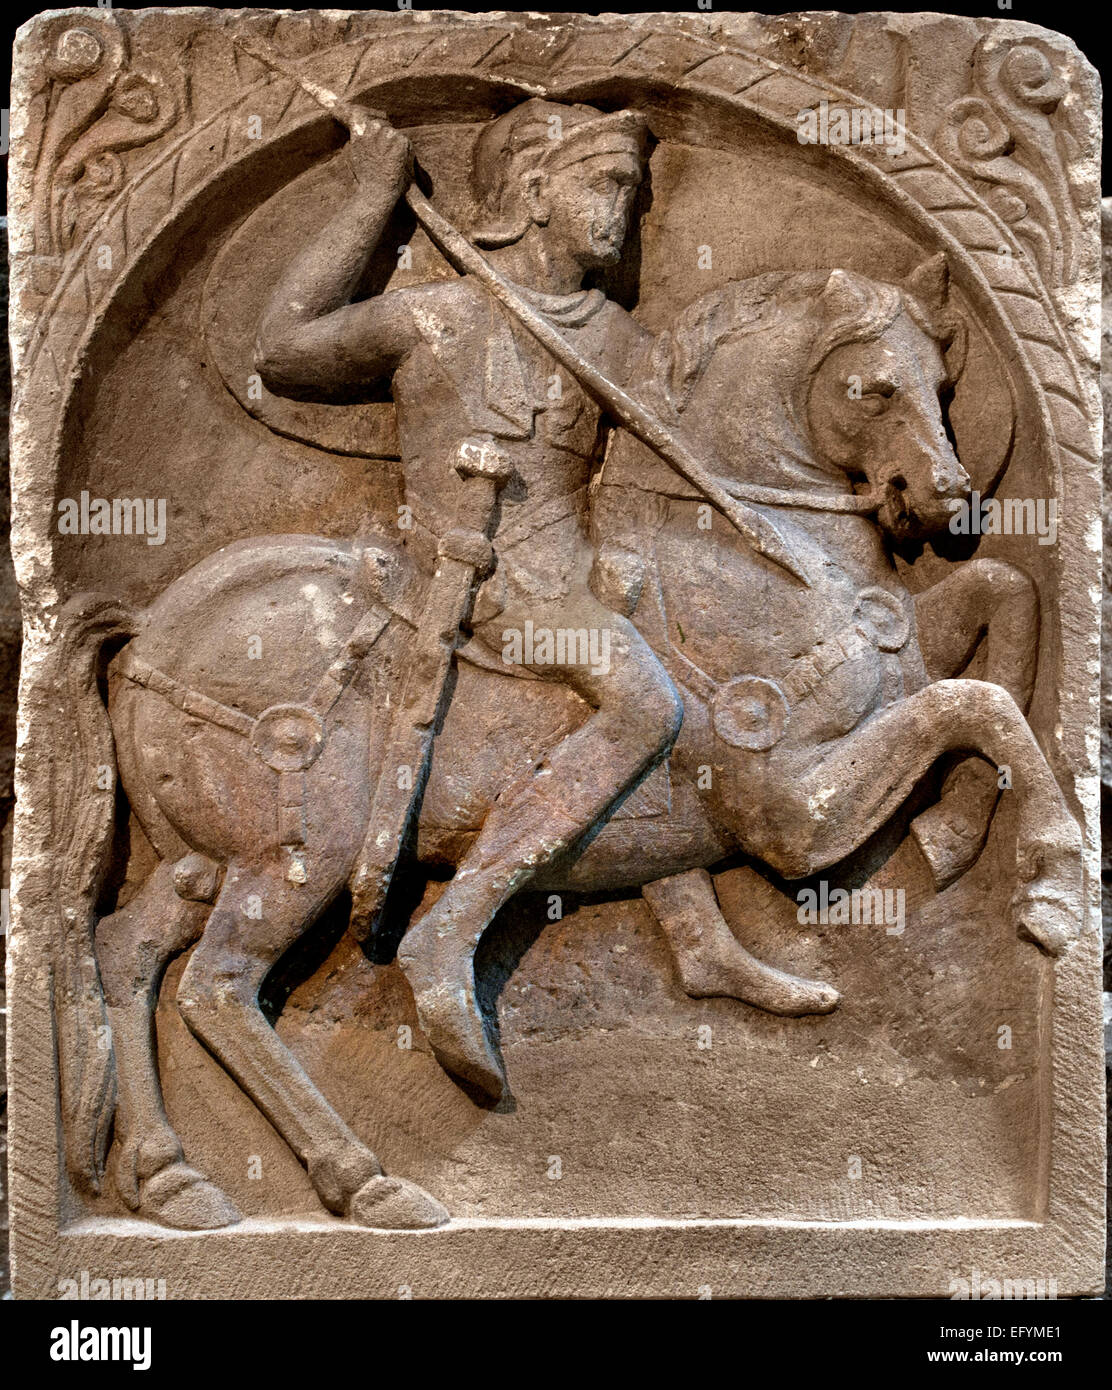 Grave monument of a cavalryman, 1st C. AD Roman Germanic Museum Cologne Germany - Stock Image